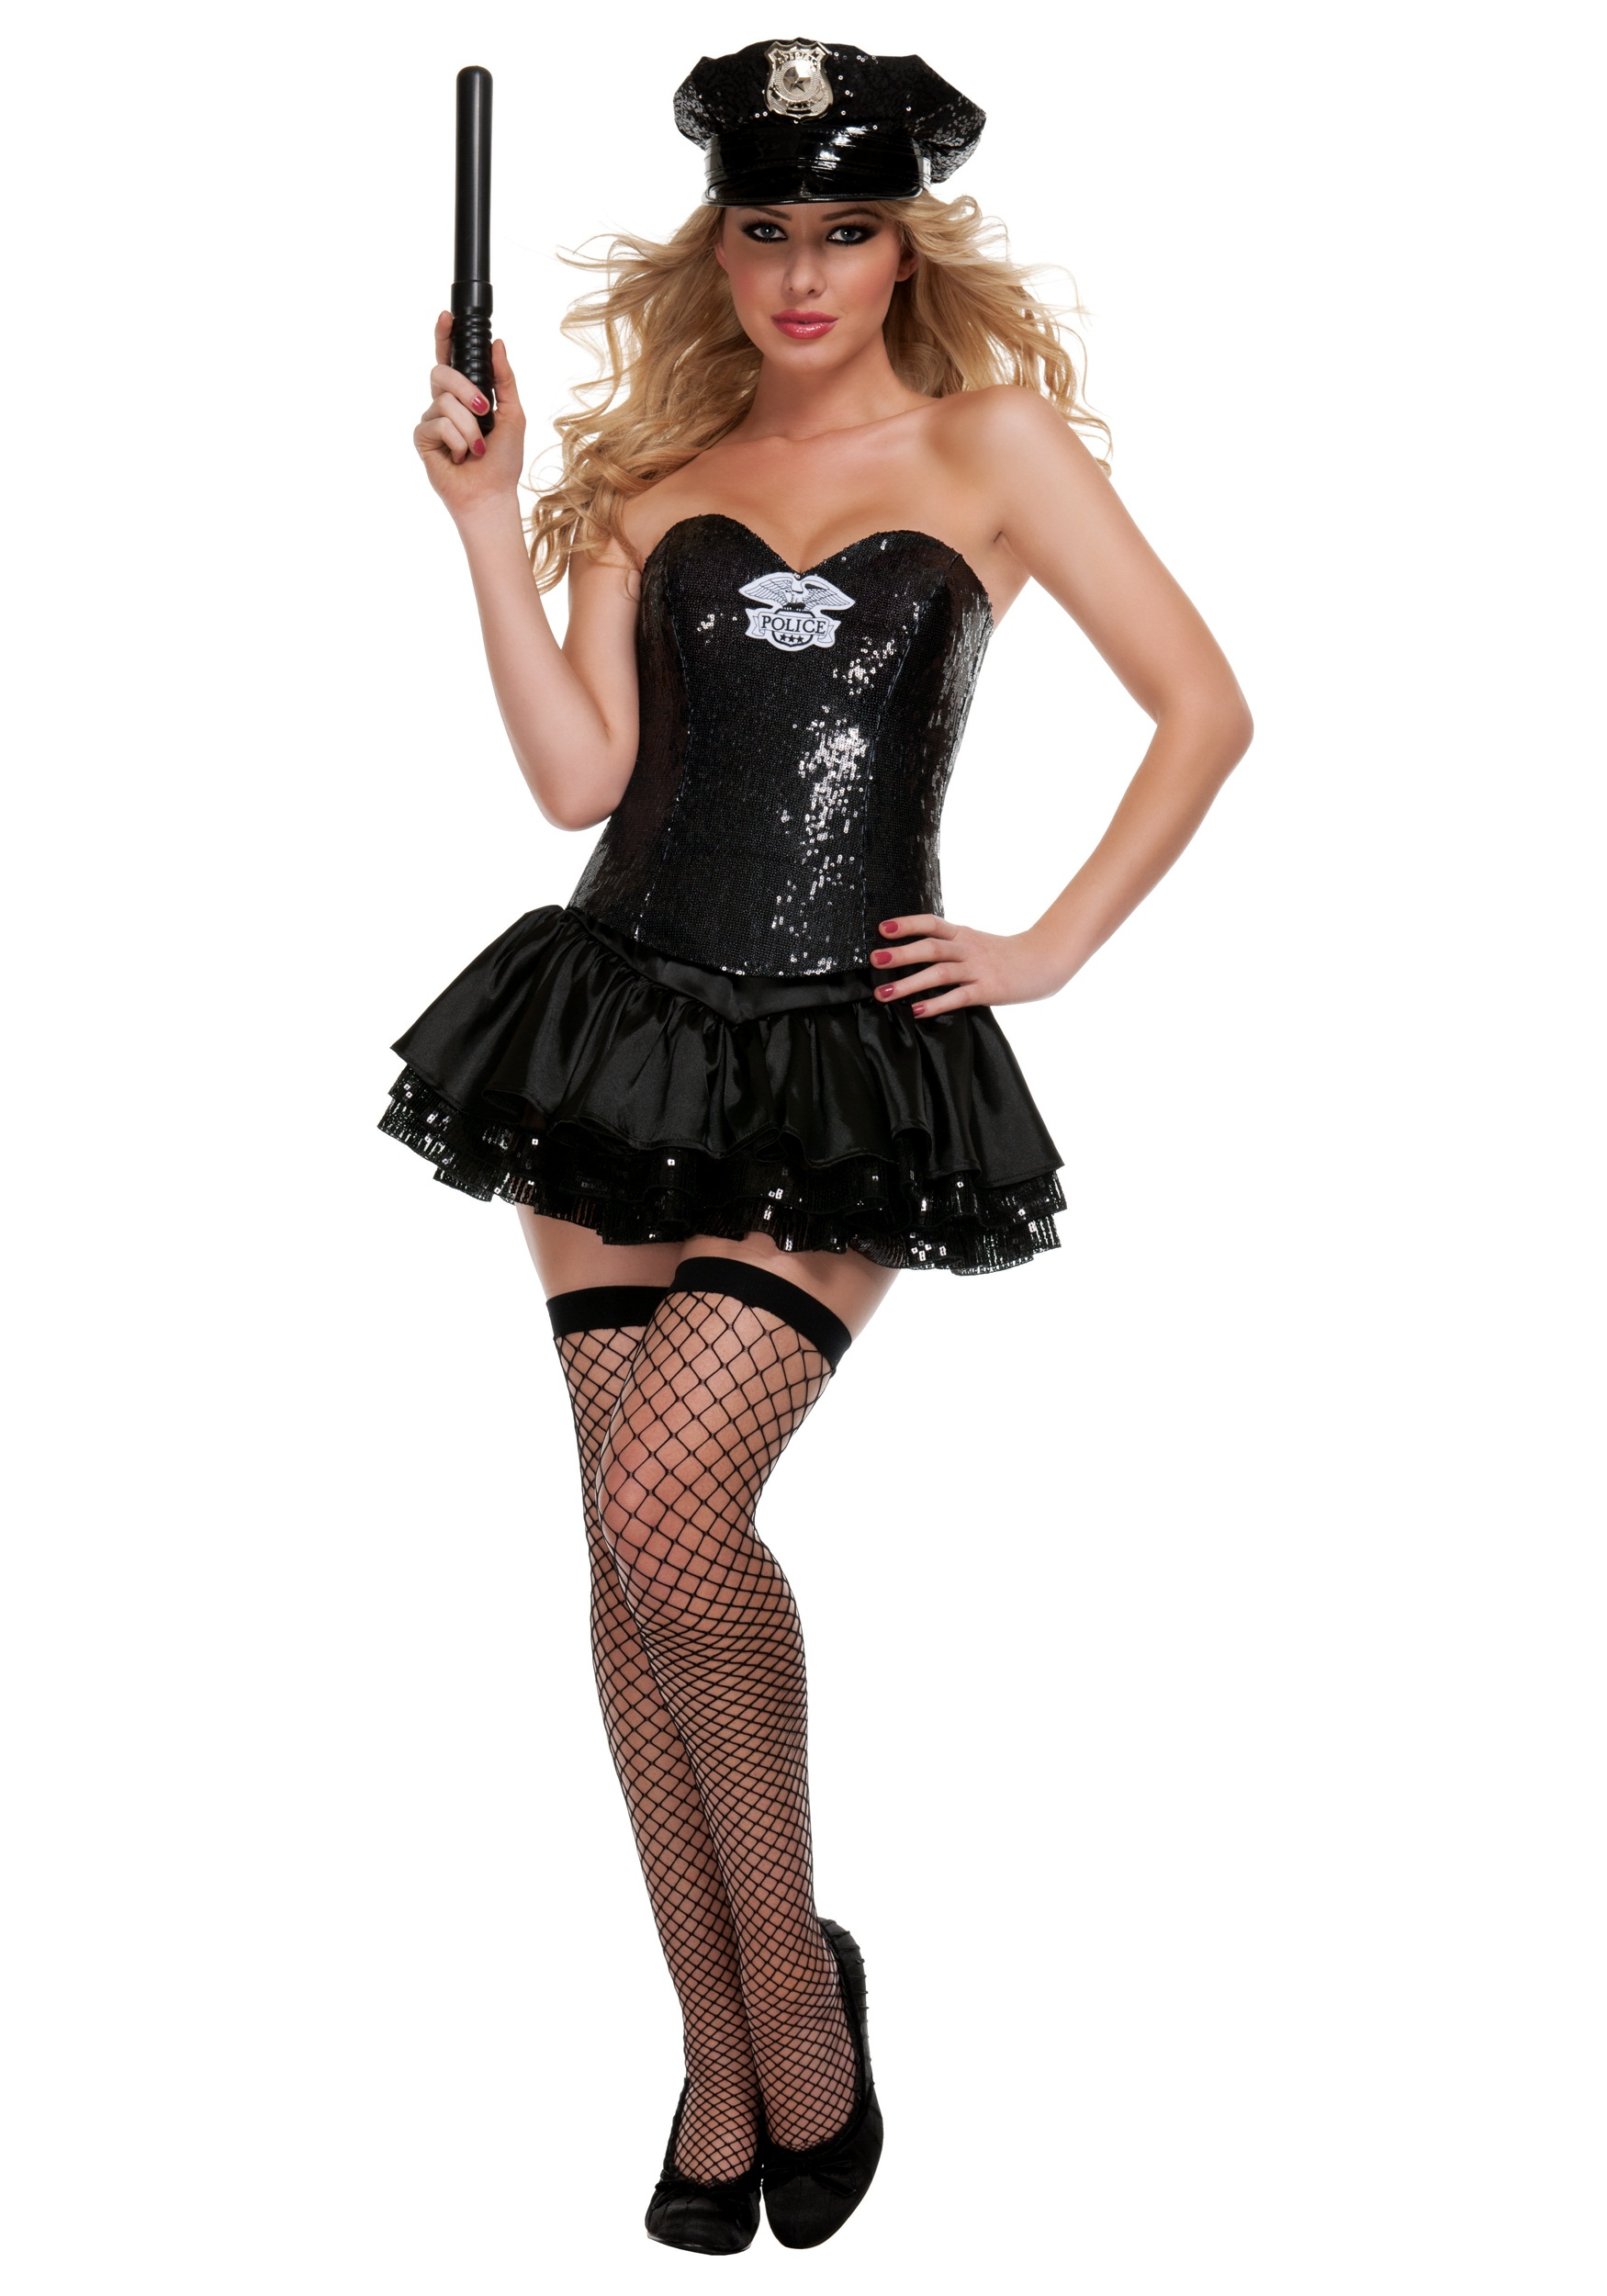 Black Sequin Cop Costume  sc 1 st  Halloween Costumes & Black Sequin Cop Costume - Halloween Costumes